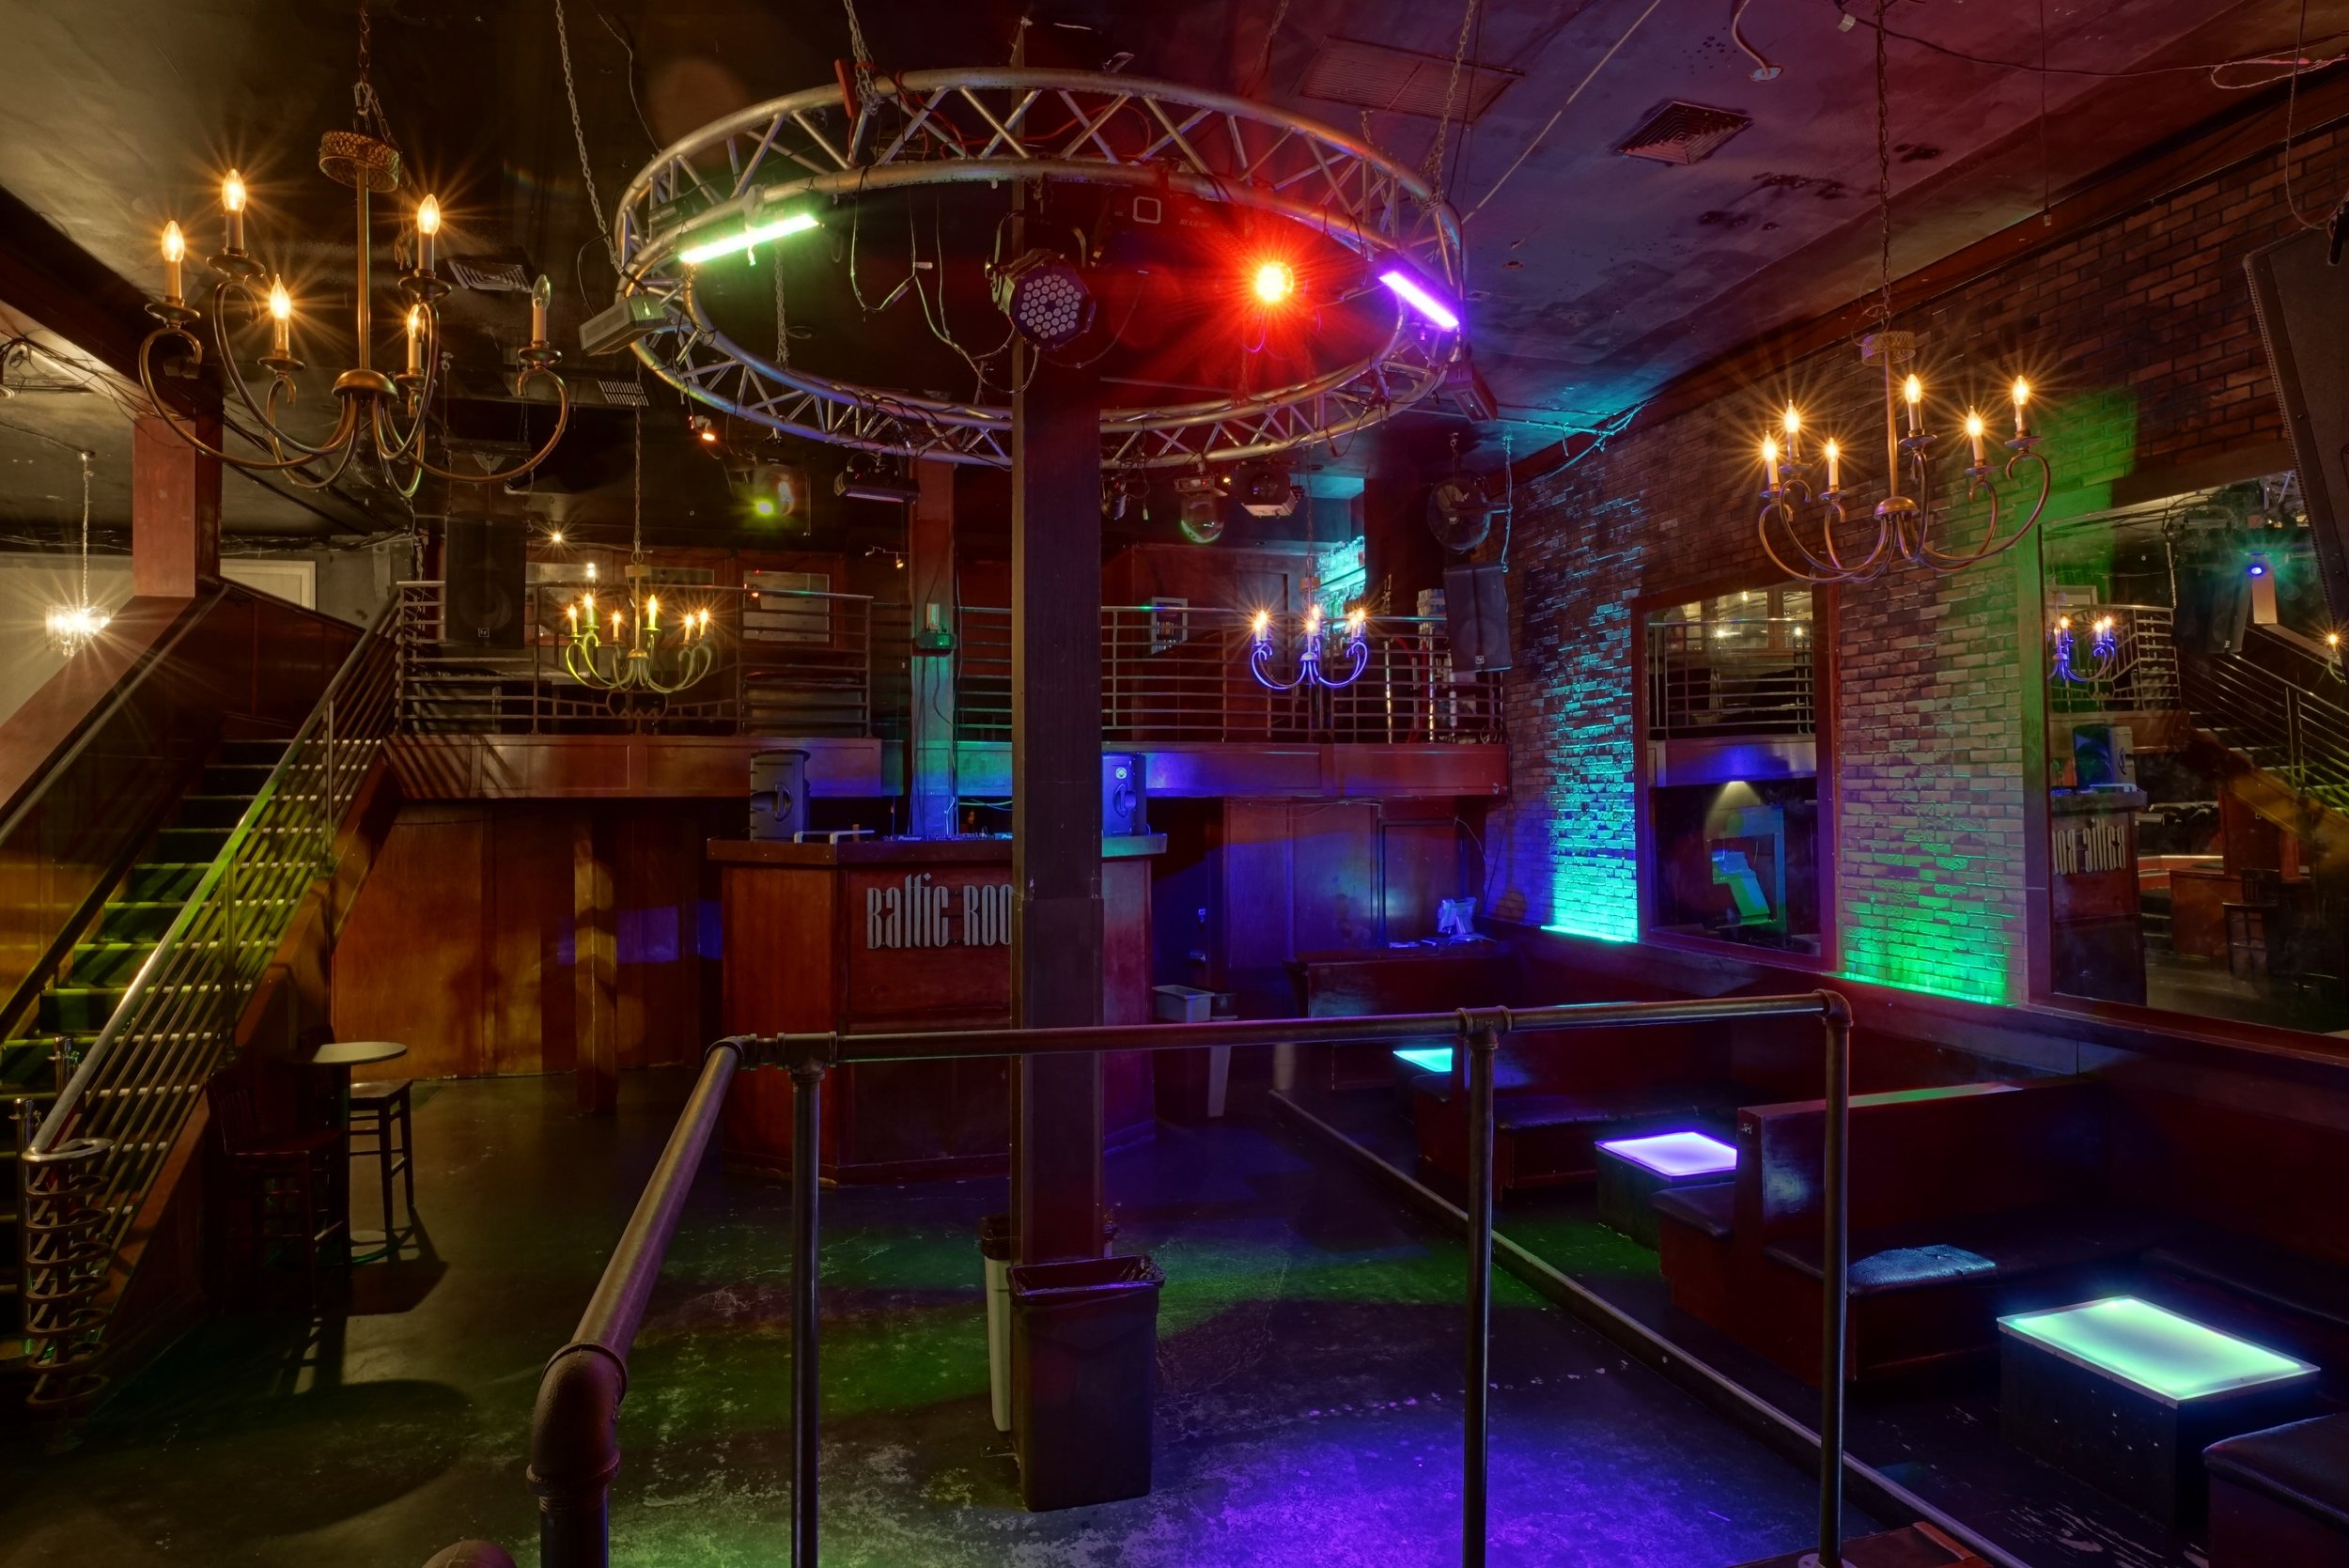 Capital Hill   Baltic Room                          Genre   Reggae Dance Hall (Mon), Drum & Bass (Tues), 90's, Old School (Fri), Hip Hop (Sat)   Time     ~ 10pm - 2am   Place    1207   Pine St, Seattle WA   98101